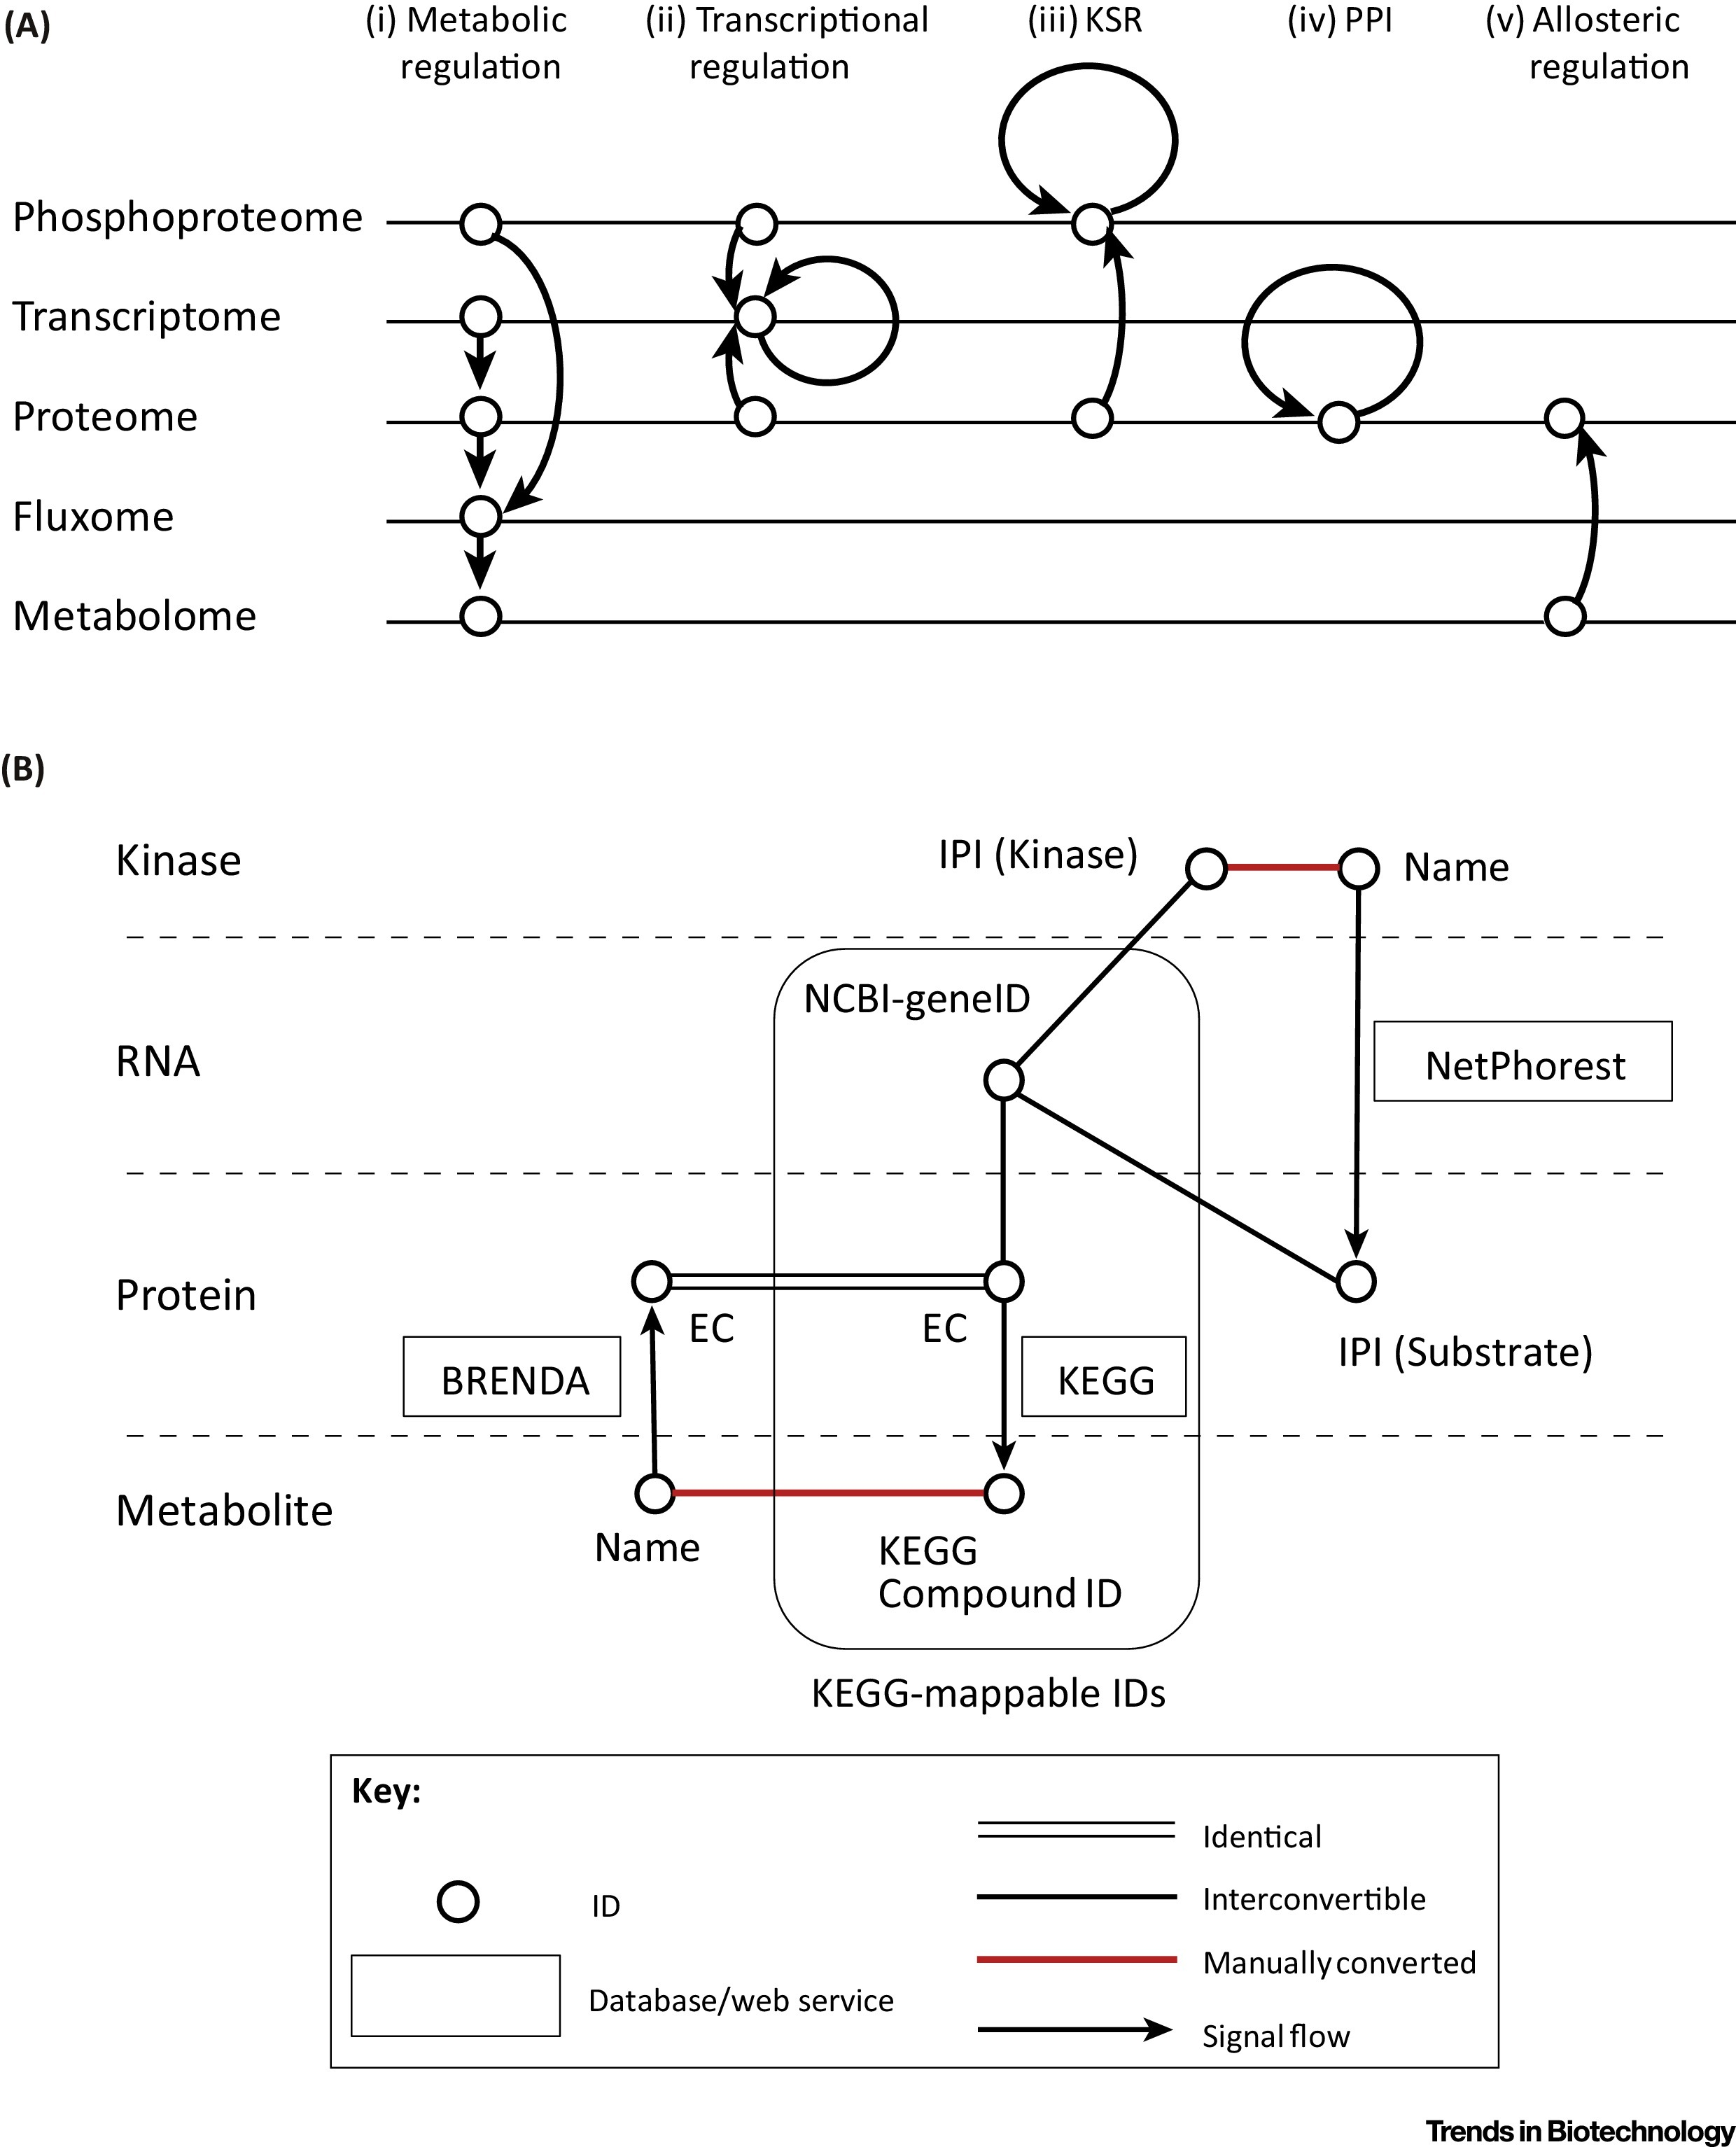 Trans-Omics: How To Reconstruct Biochemical Networks